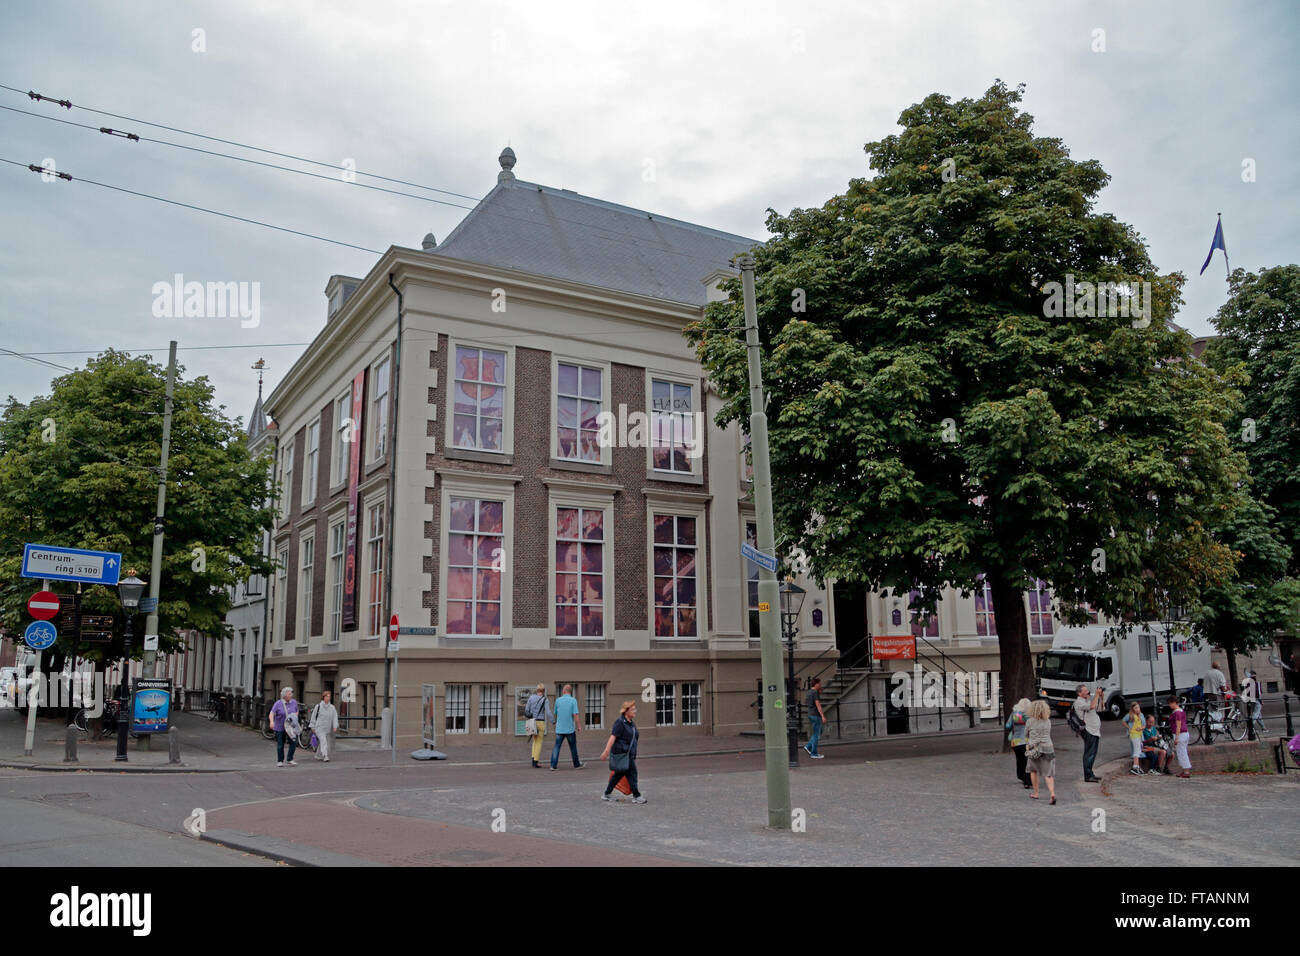 The Haags Historisch Museum (Historical Museum of The Hague) in The Hague, Netherlands. - Stock Image